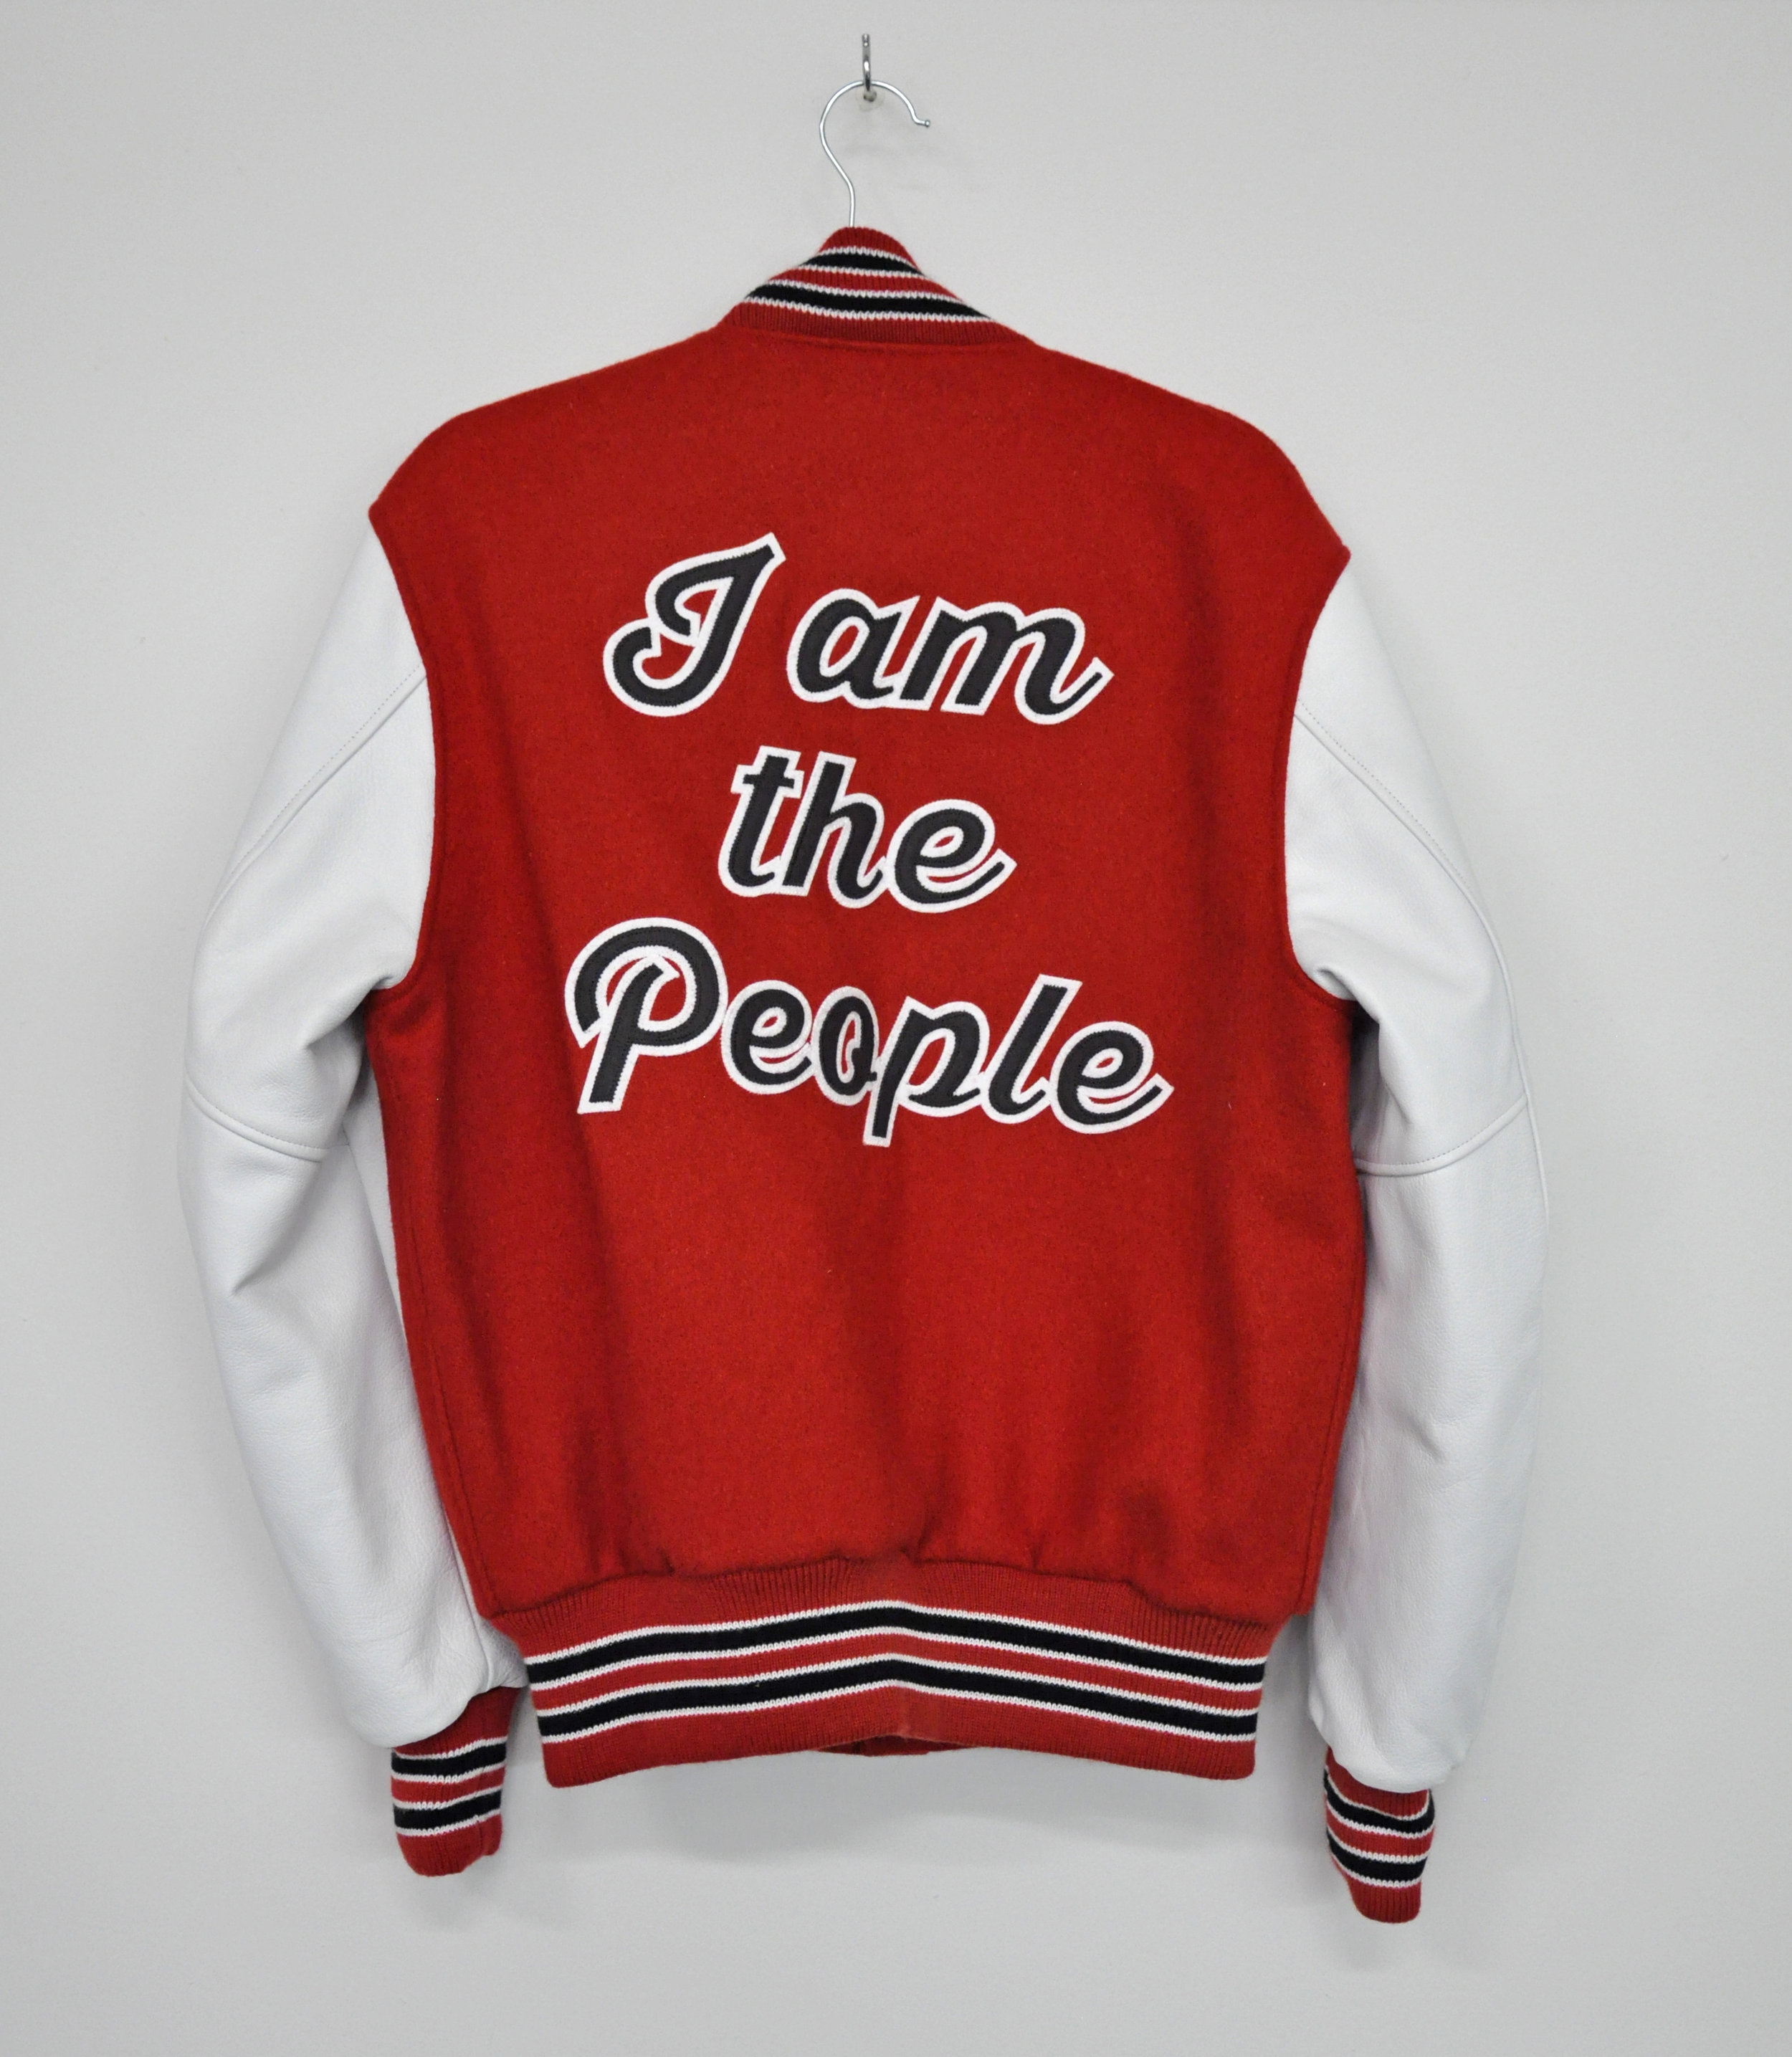 "Cheryl Pope, ""I AM THE PEOPLE"" from ""I'VE BEEN HEARD"", in collaboration with NYC Youth on Streetball (Jacket), Artist-designed letterman jacket, AP 1/2, 2017"